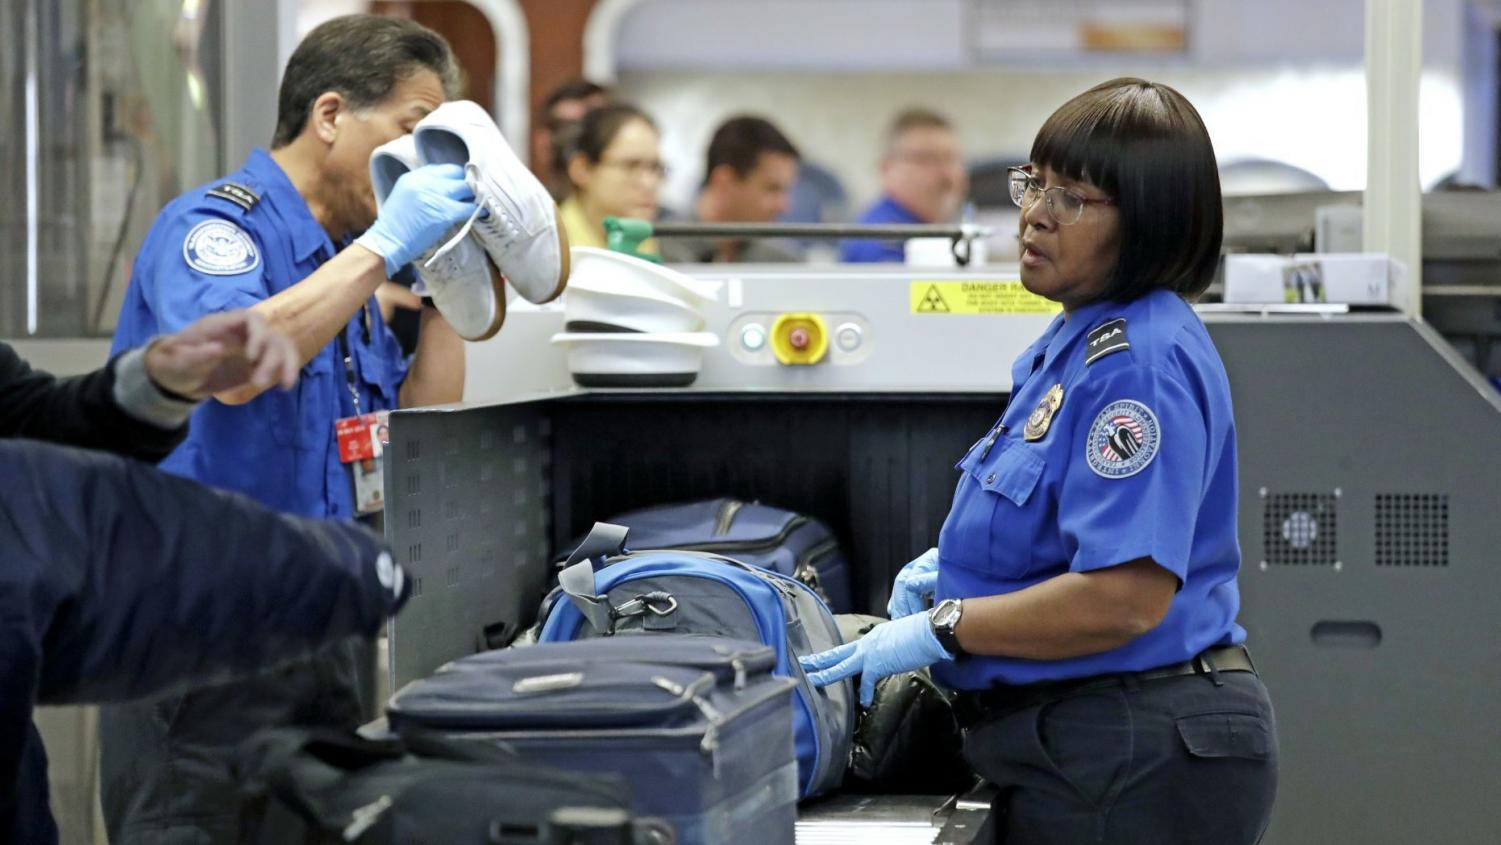 TSA officers screen luggage during partial government shutdown December 31,2018 at Seattle-Tacoma International Airport in Washington.